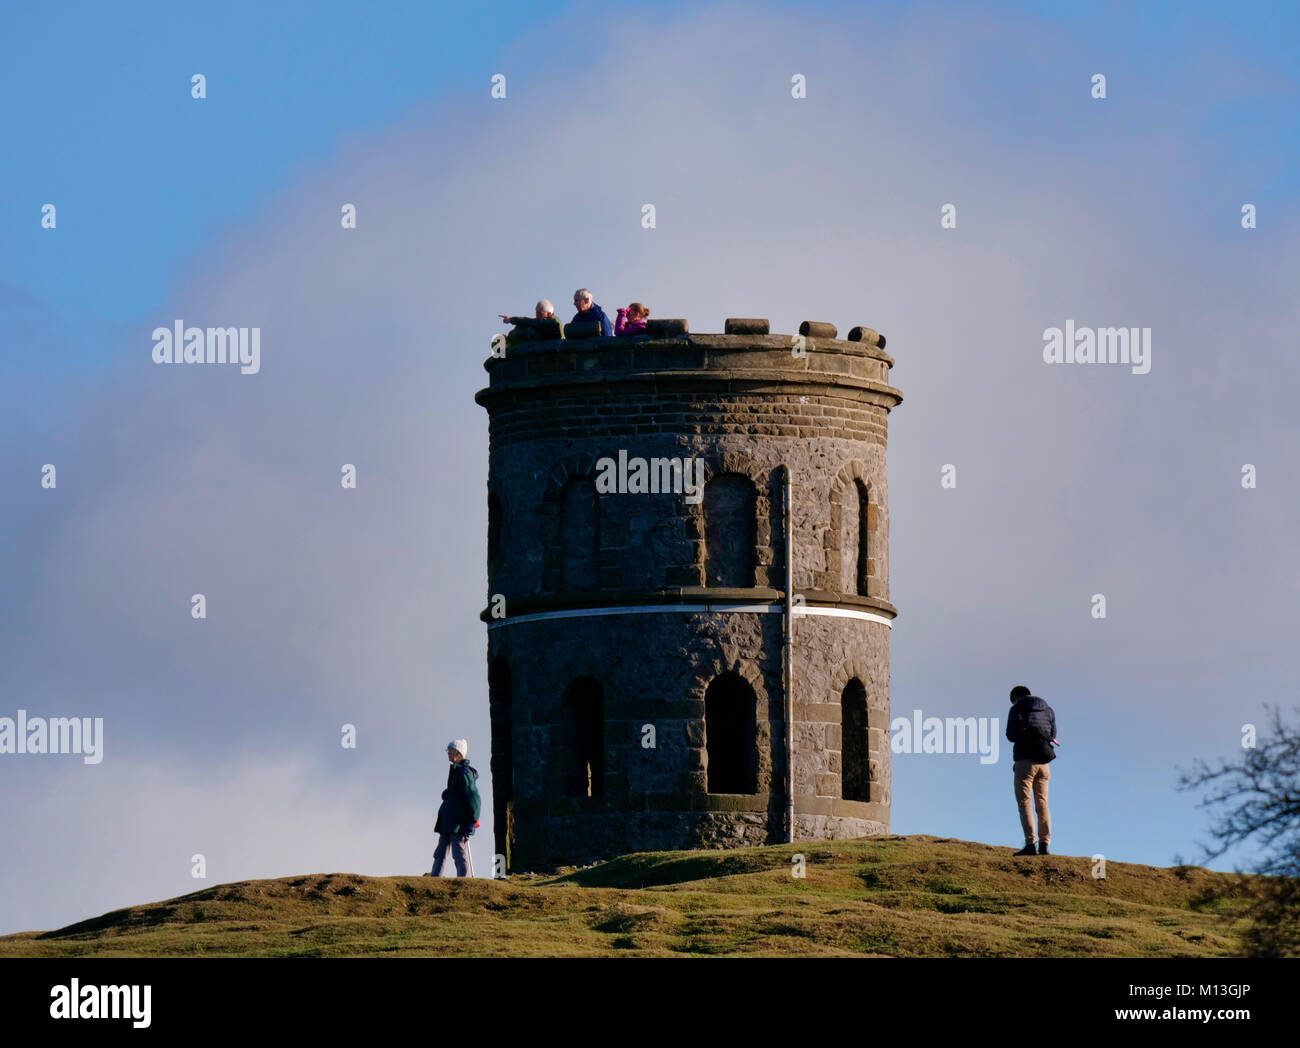 Solomon's Temple, Buxton. 26th Jan, 2018. UK Weather: walkers enjoying the view druing bright blue skys over - Stock Image